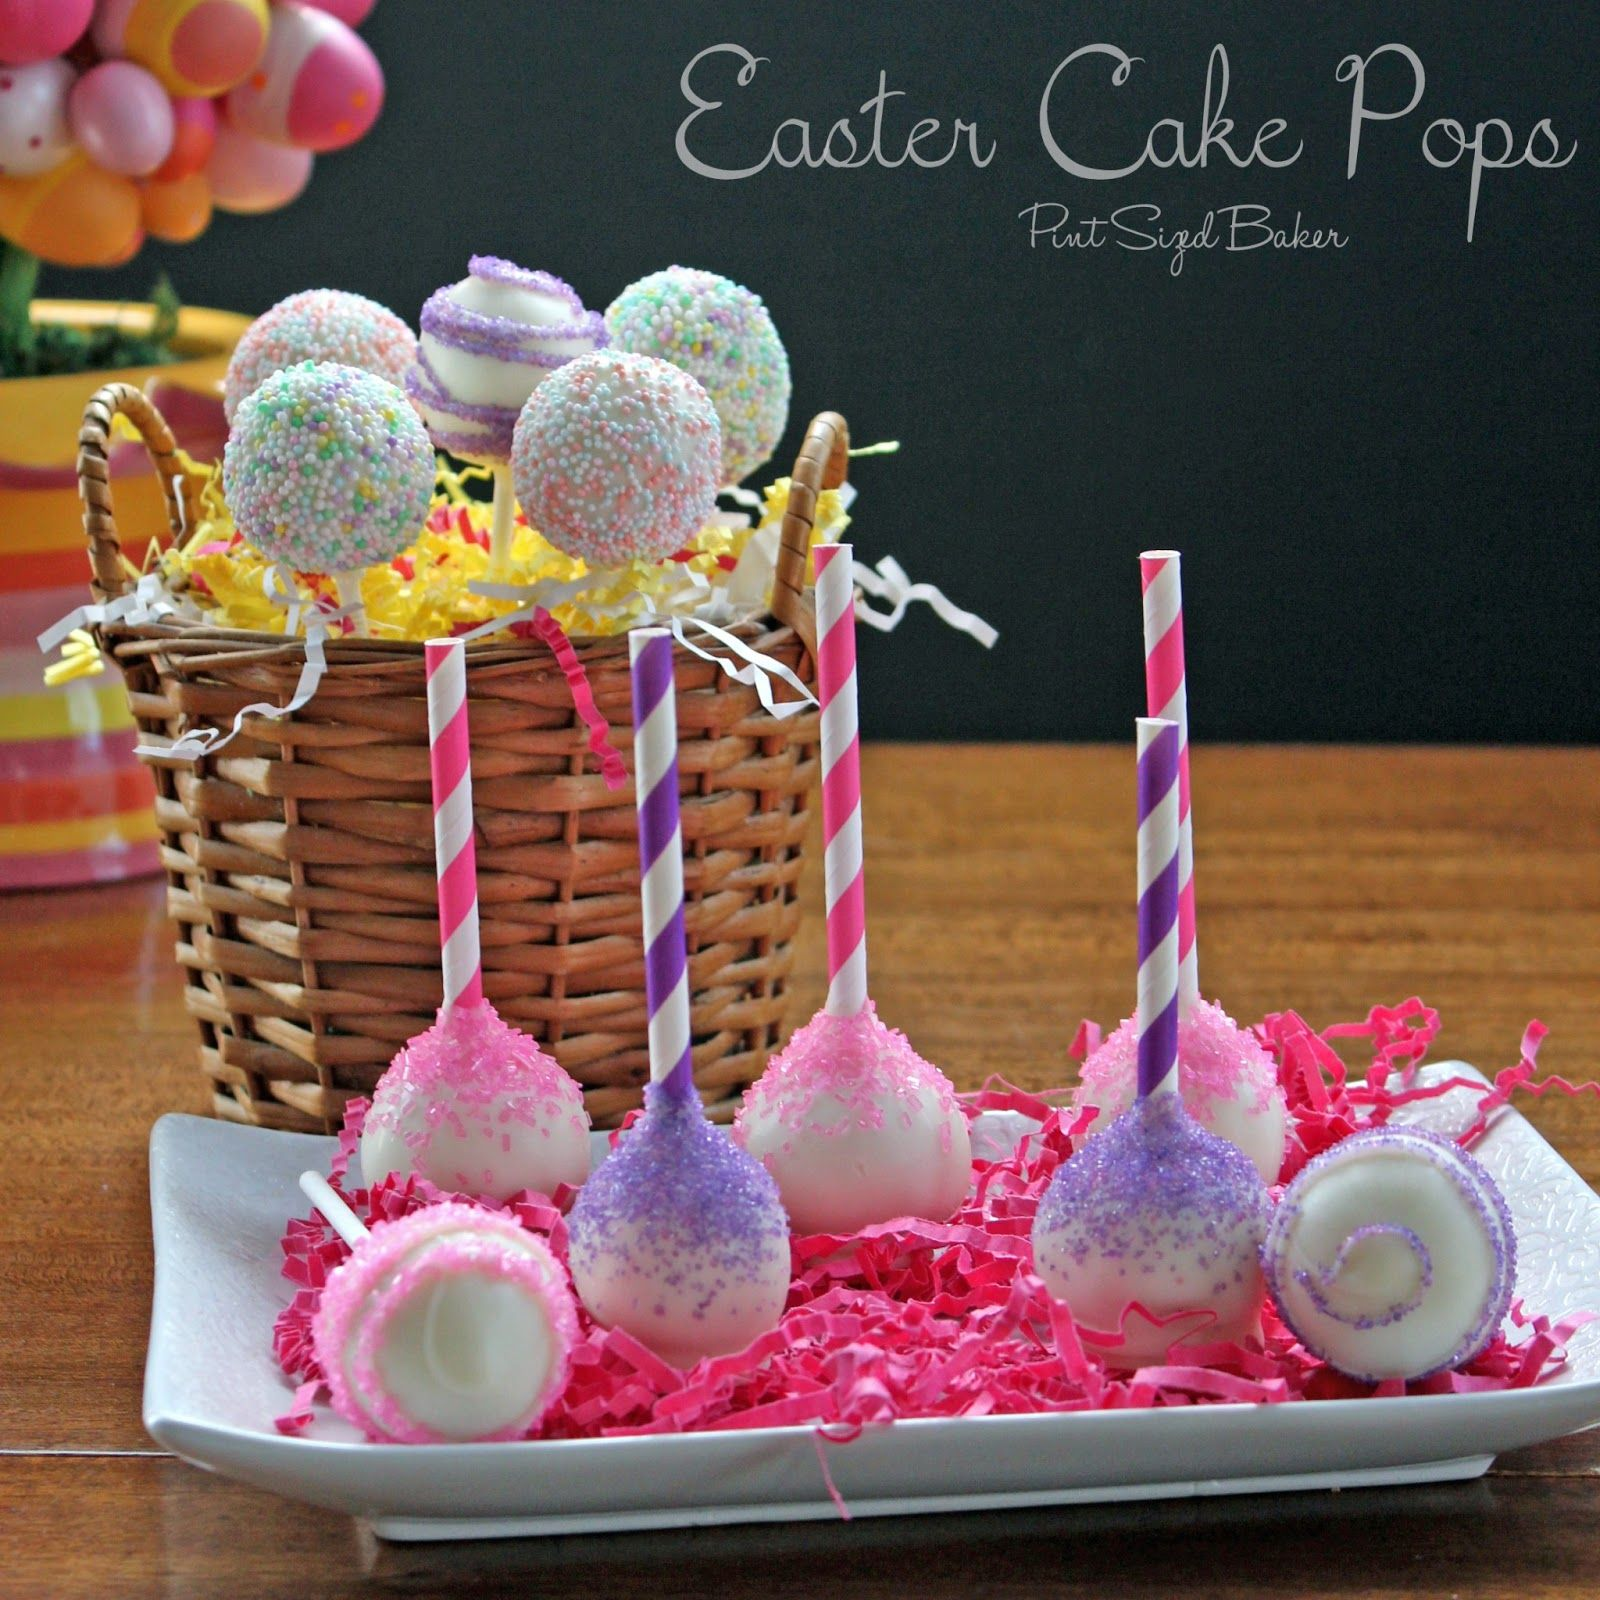 Pint Sized Baker: Cake Pops From Scratch